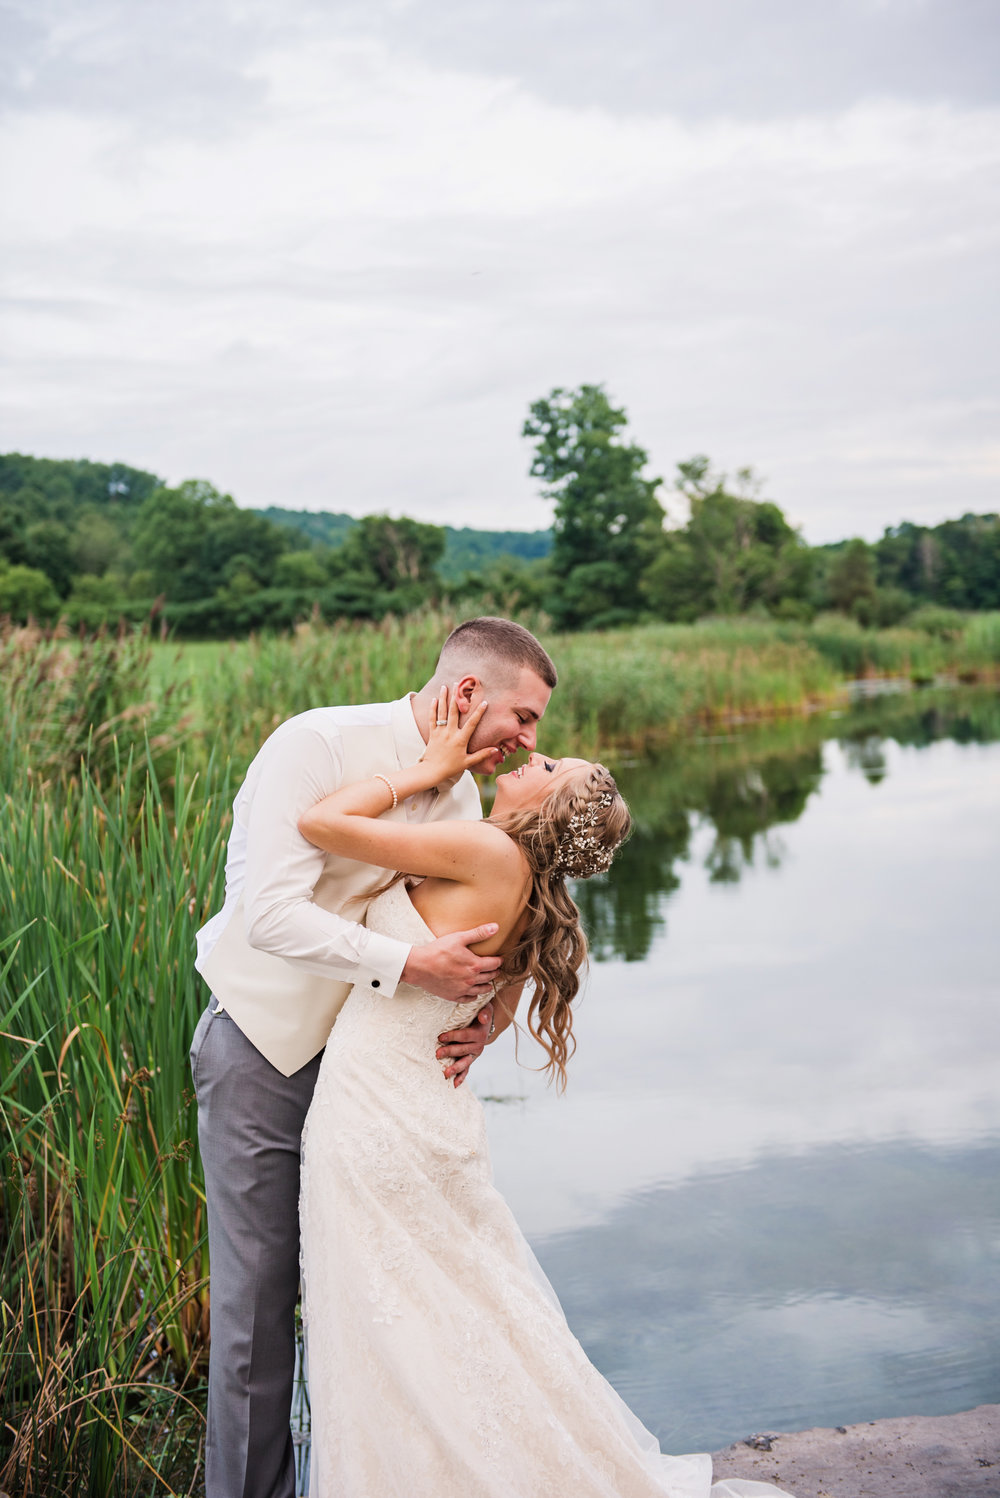 Wolf_Oak_Acres_Central_NY_Wedding_JILL_STUDIO_Rochester_NY_Photographer_DSC_8993.jpg